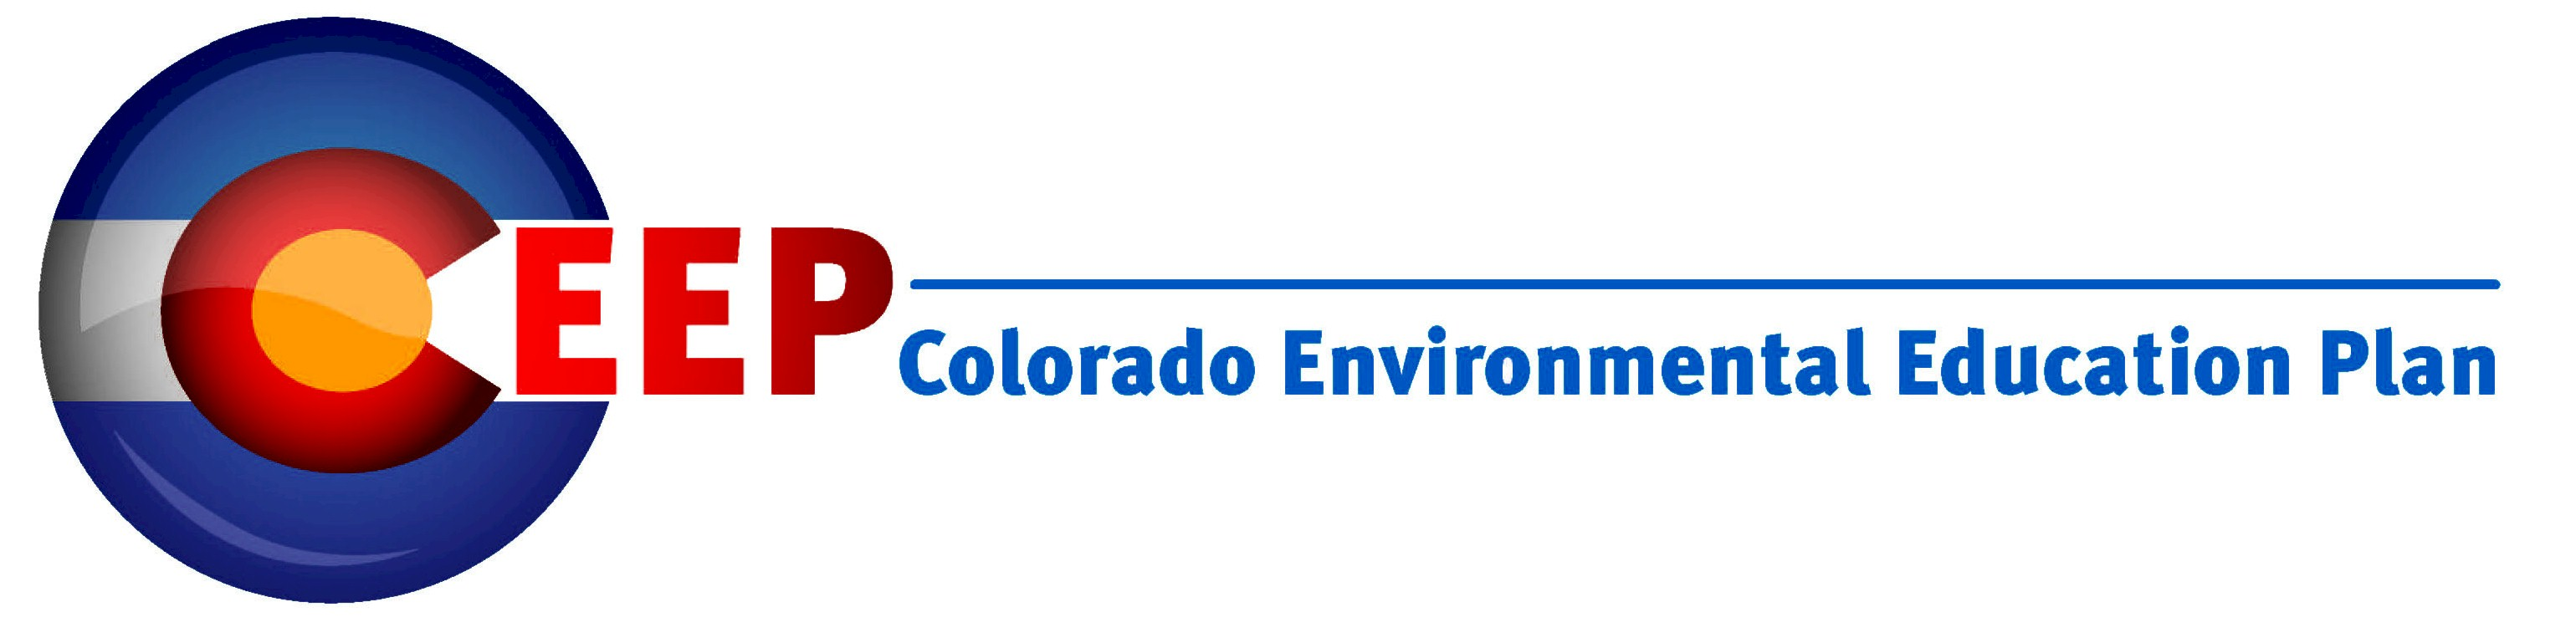 Colorado Environmental Education Plan or CEEP logo